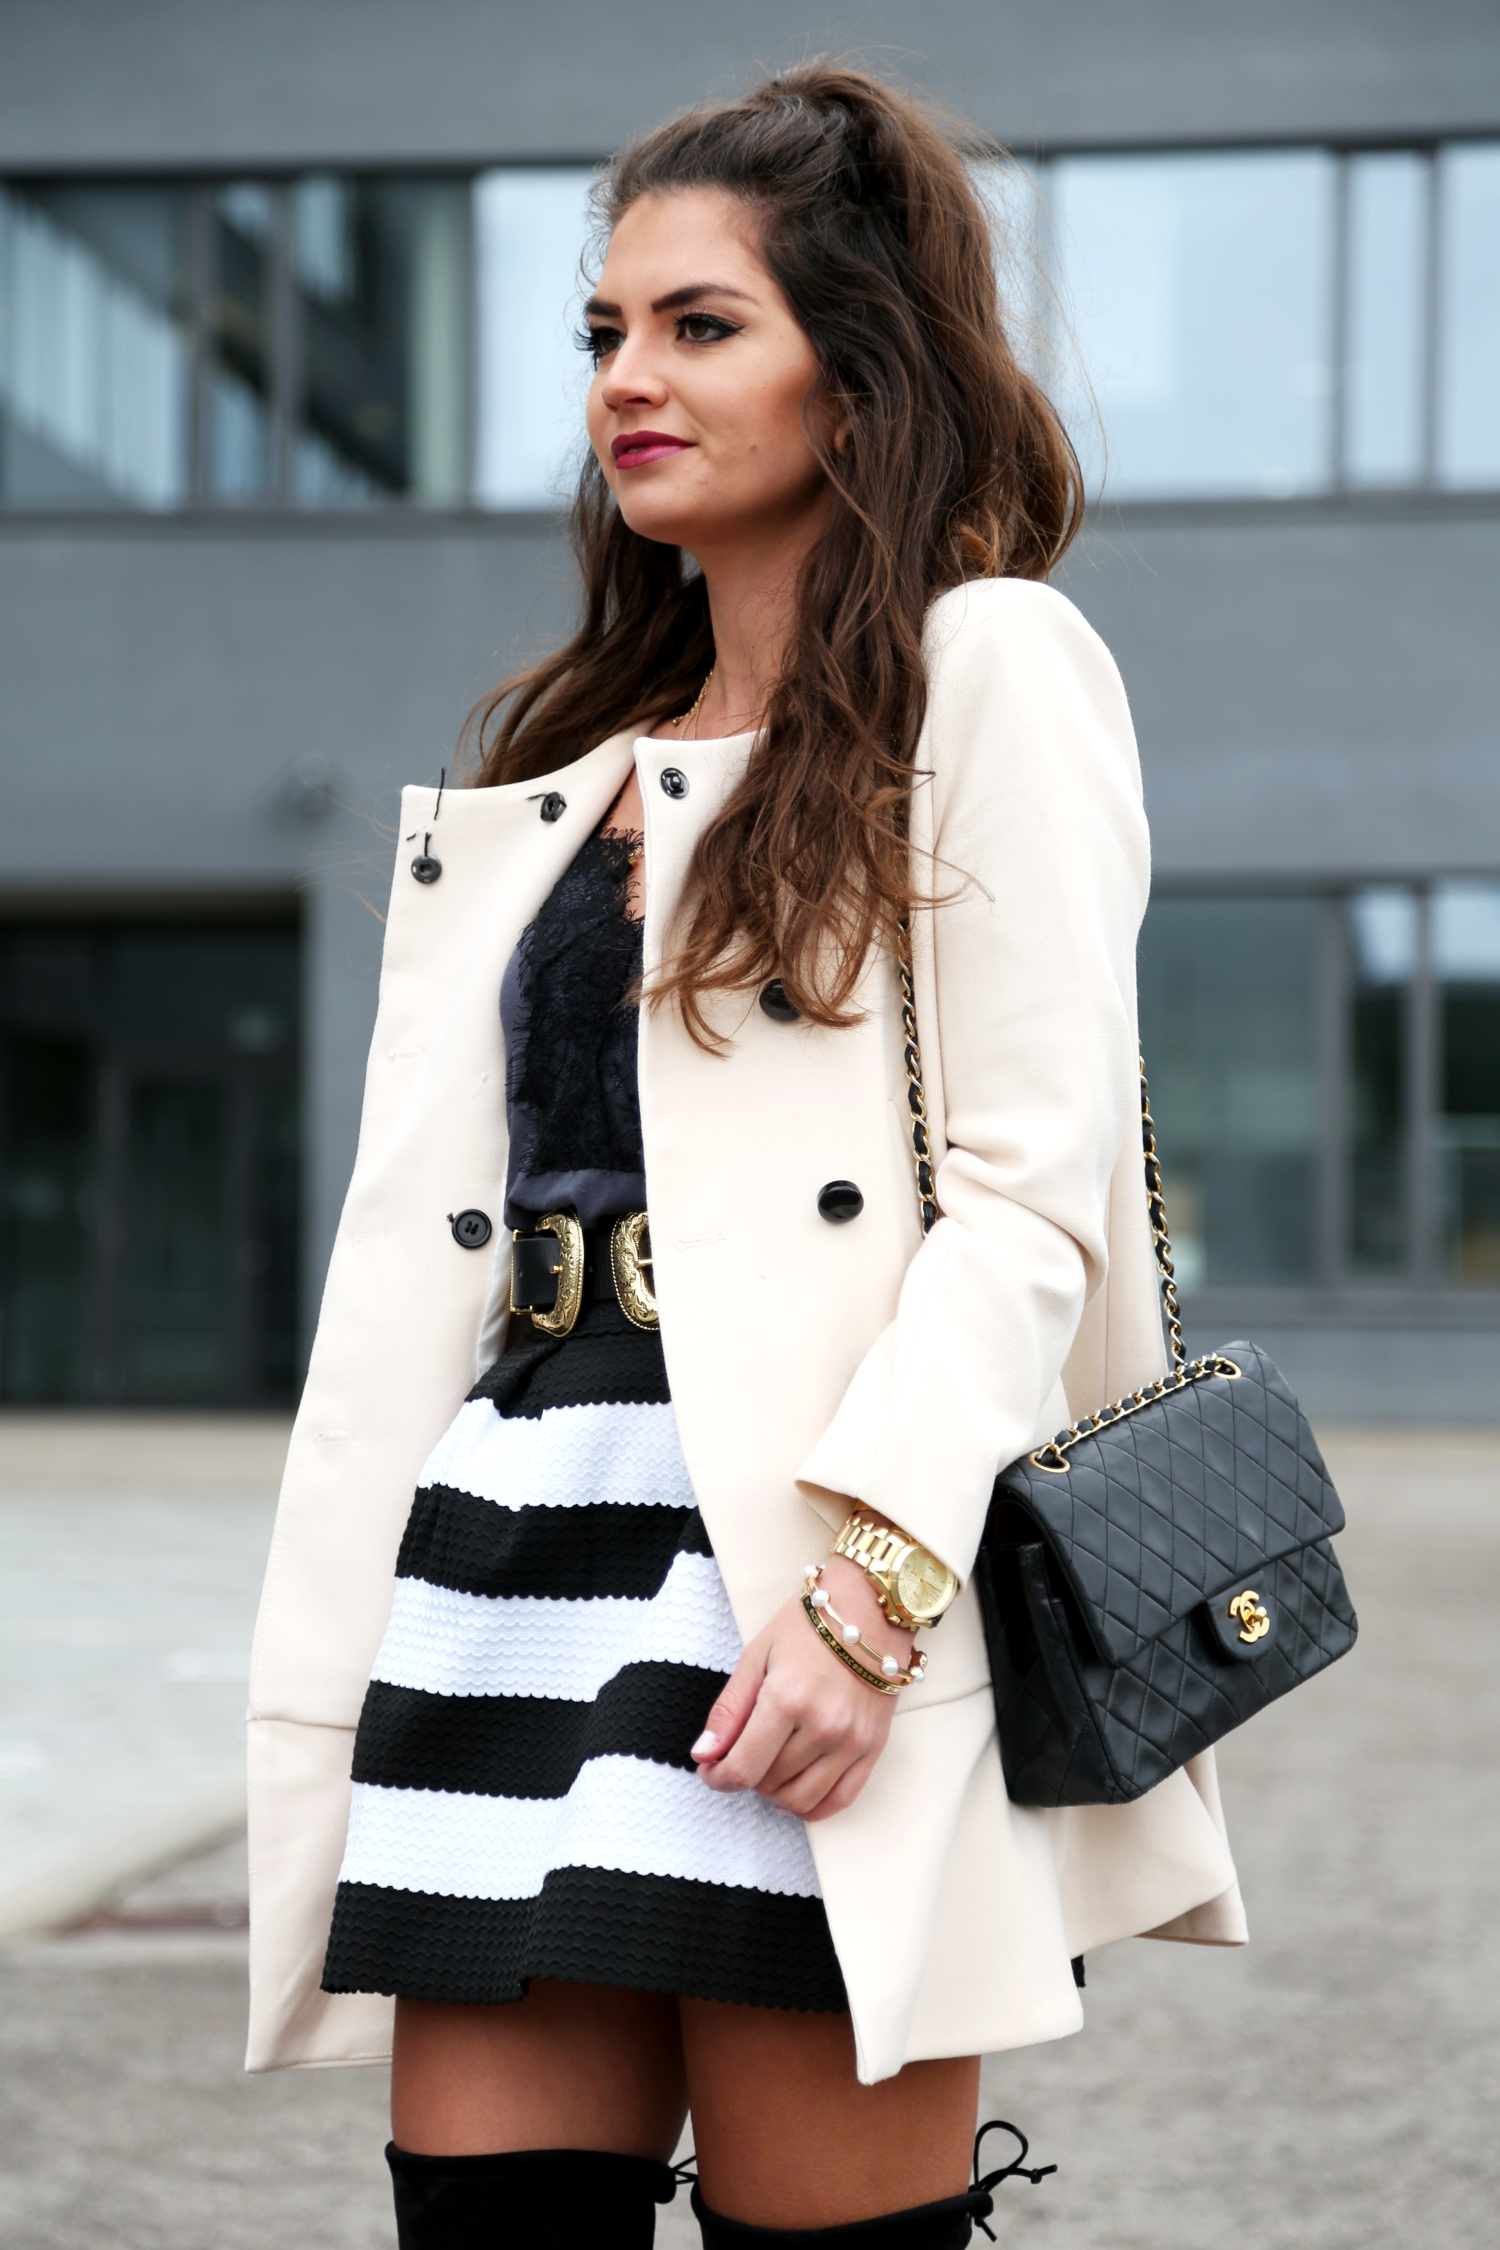 outfit-fashionhippieloves-lace-shirt-stripes-skirt-chanel-bag